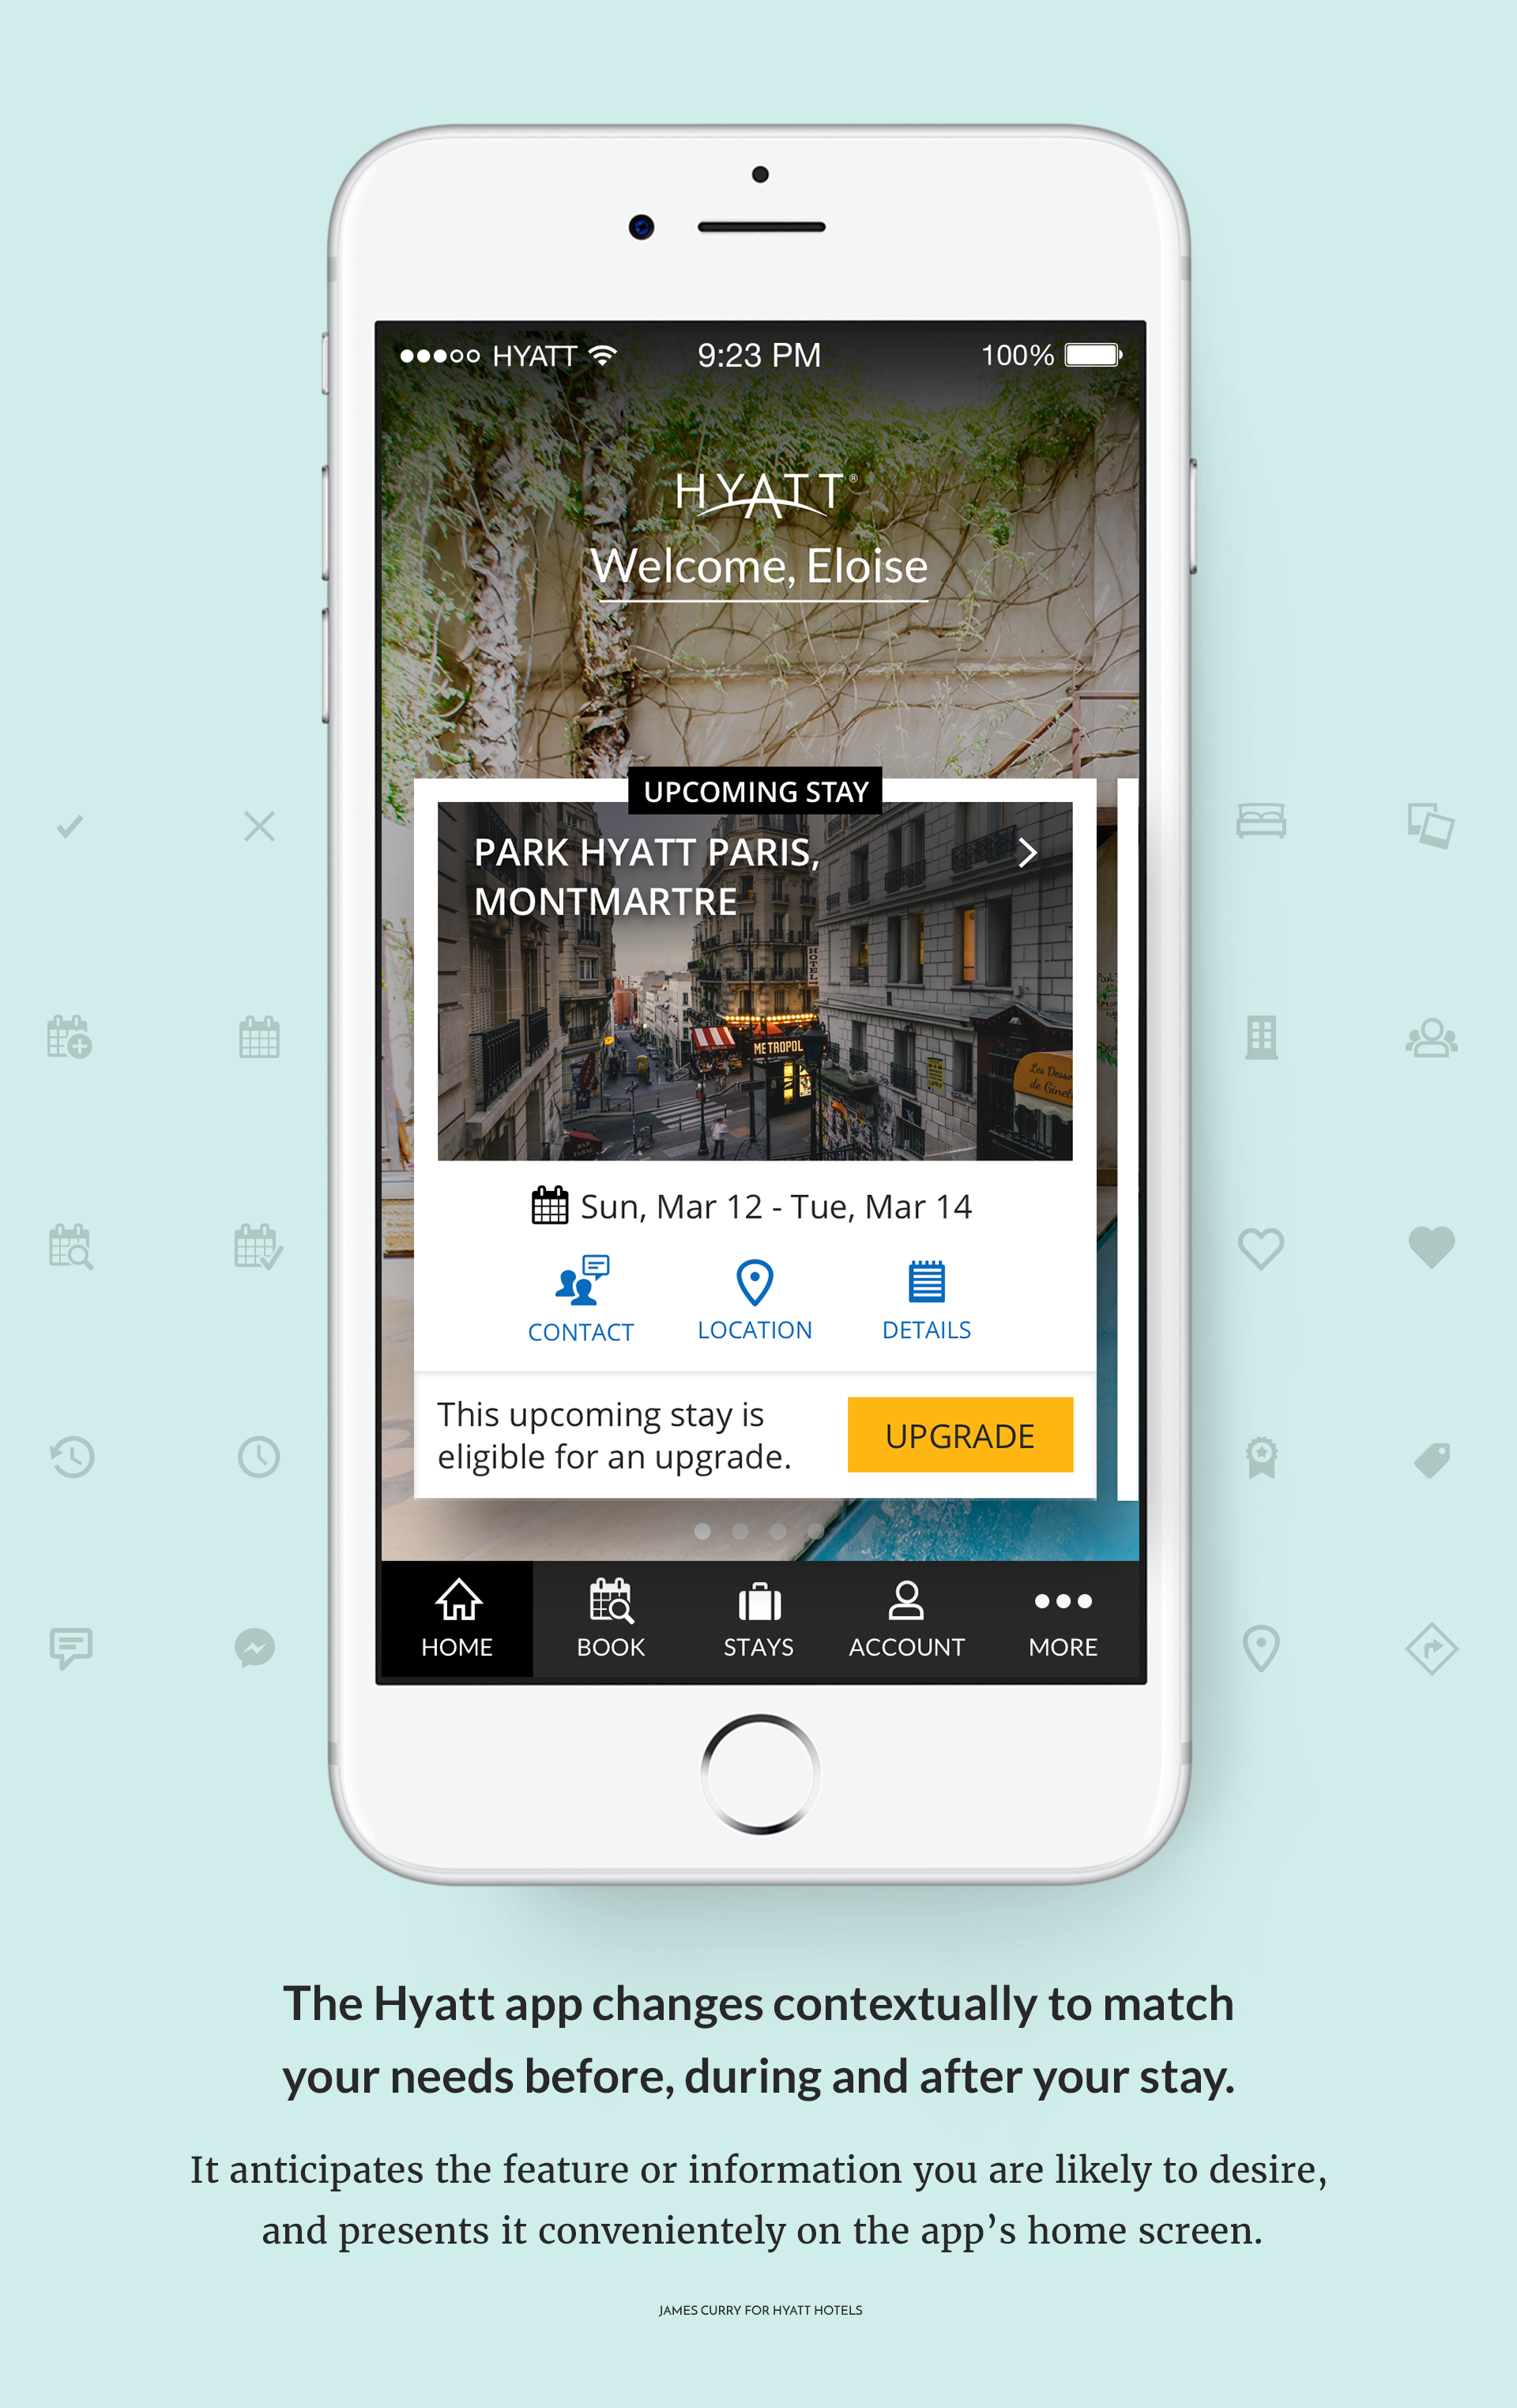 The Hyatt app changes state contextually to match your needs before, during and after your stay.